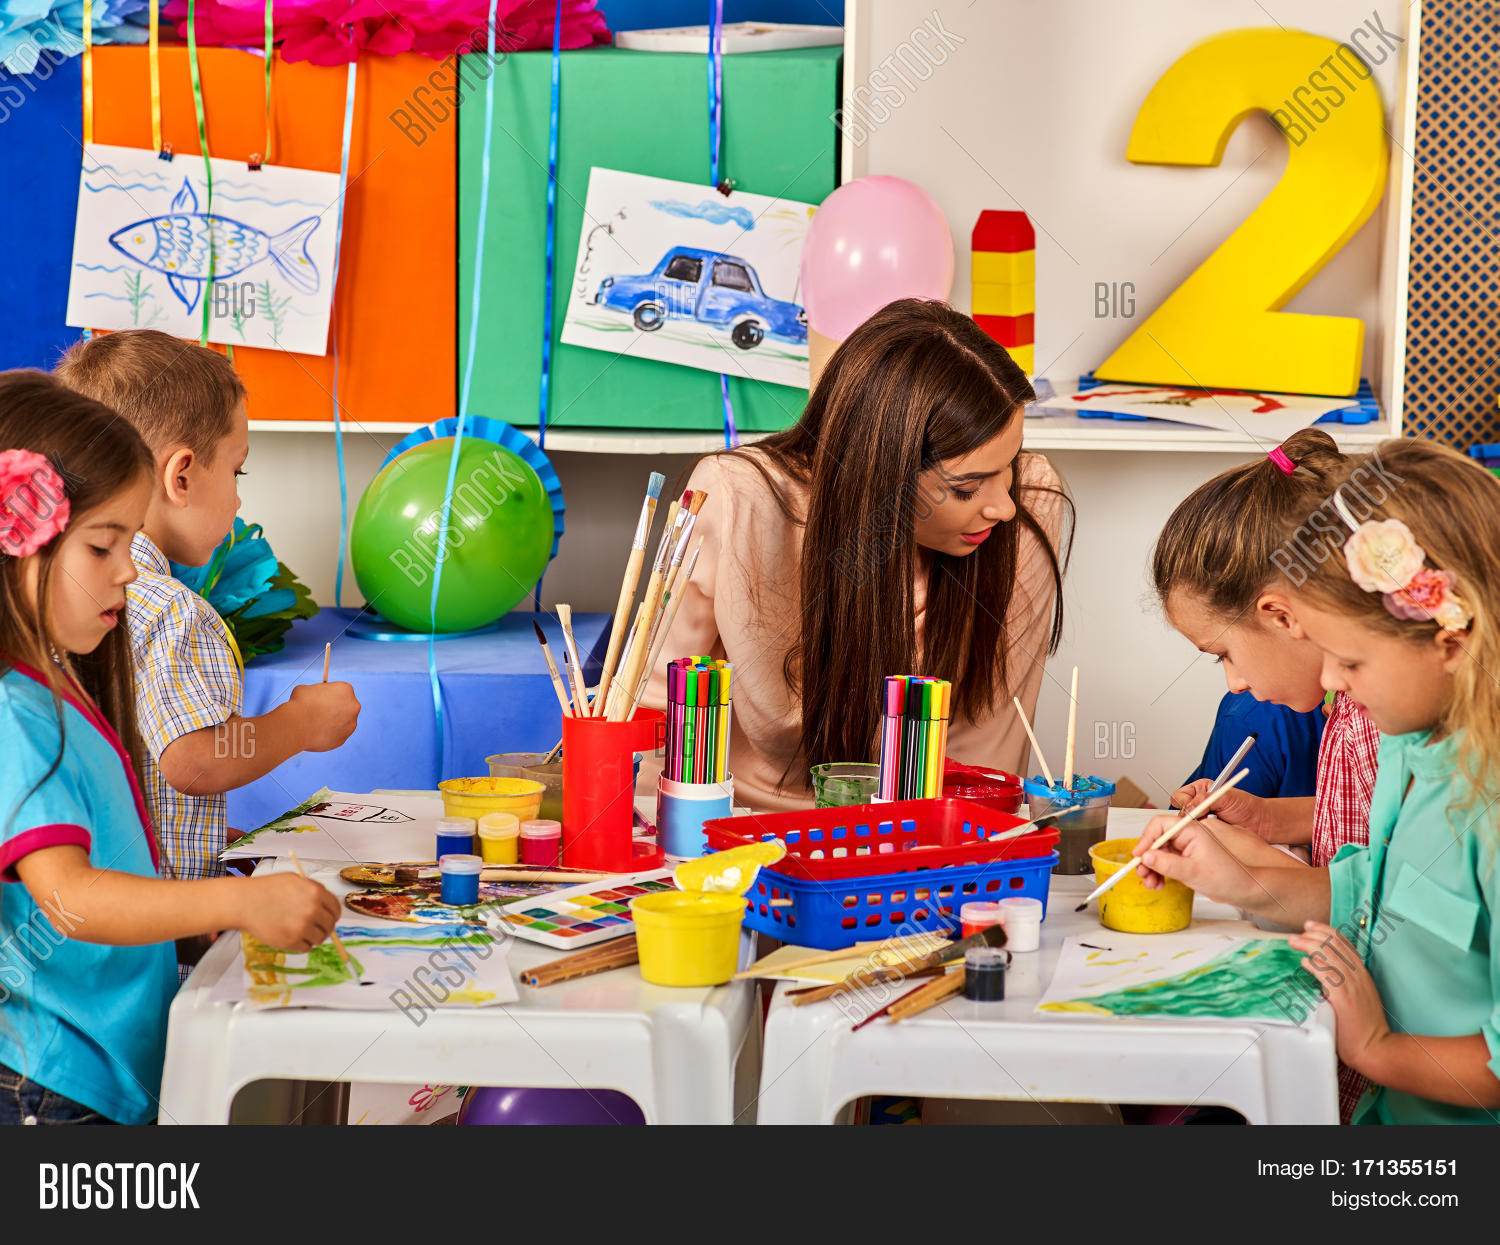 Children painting image photo free trial bigstock for Craft paint safe for babies